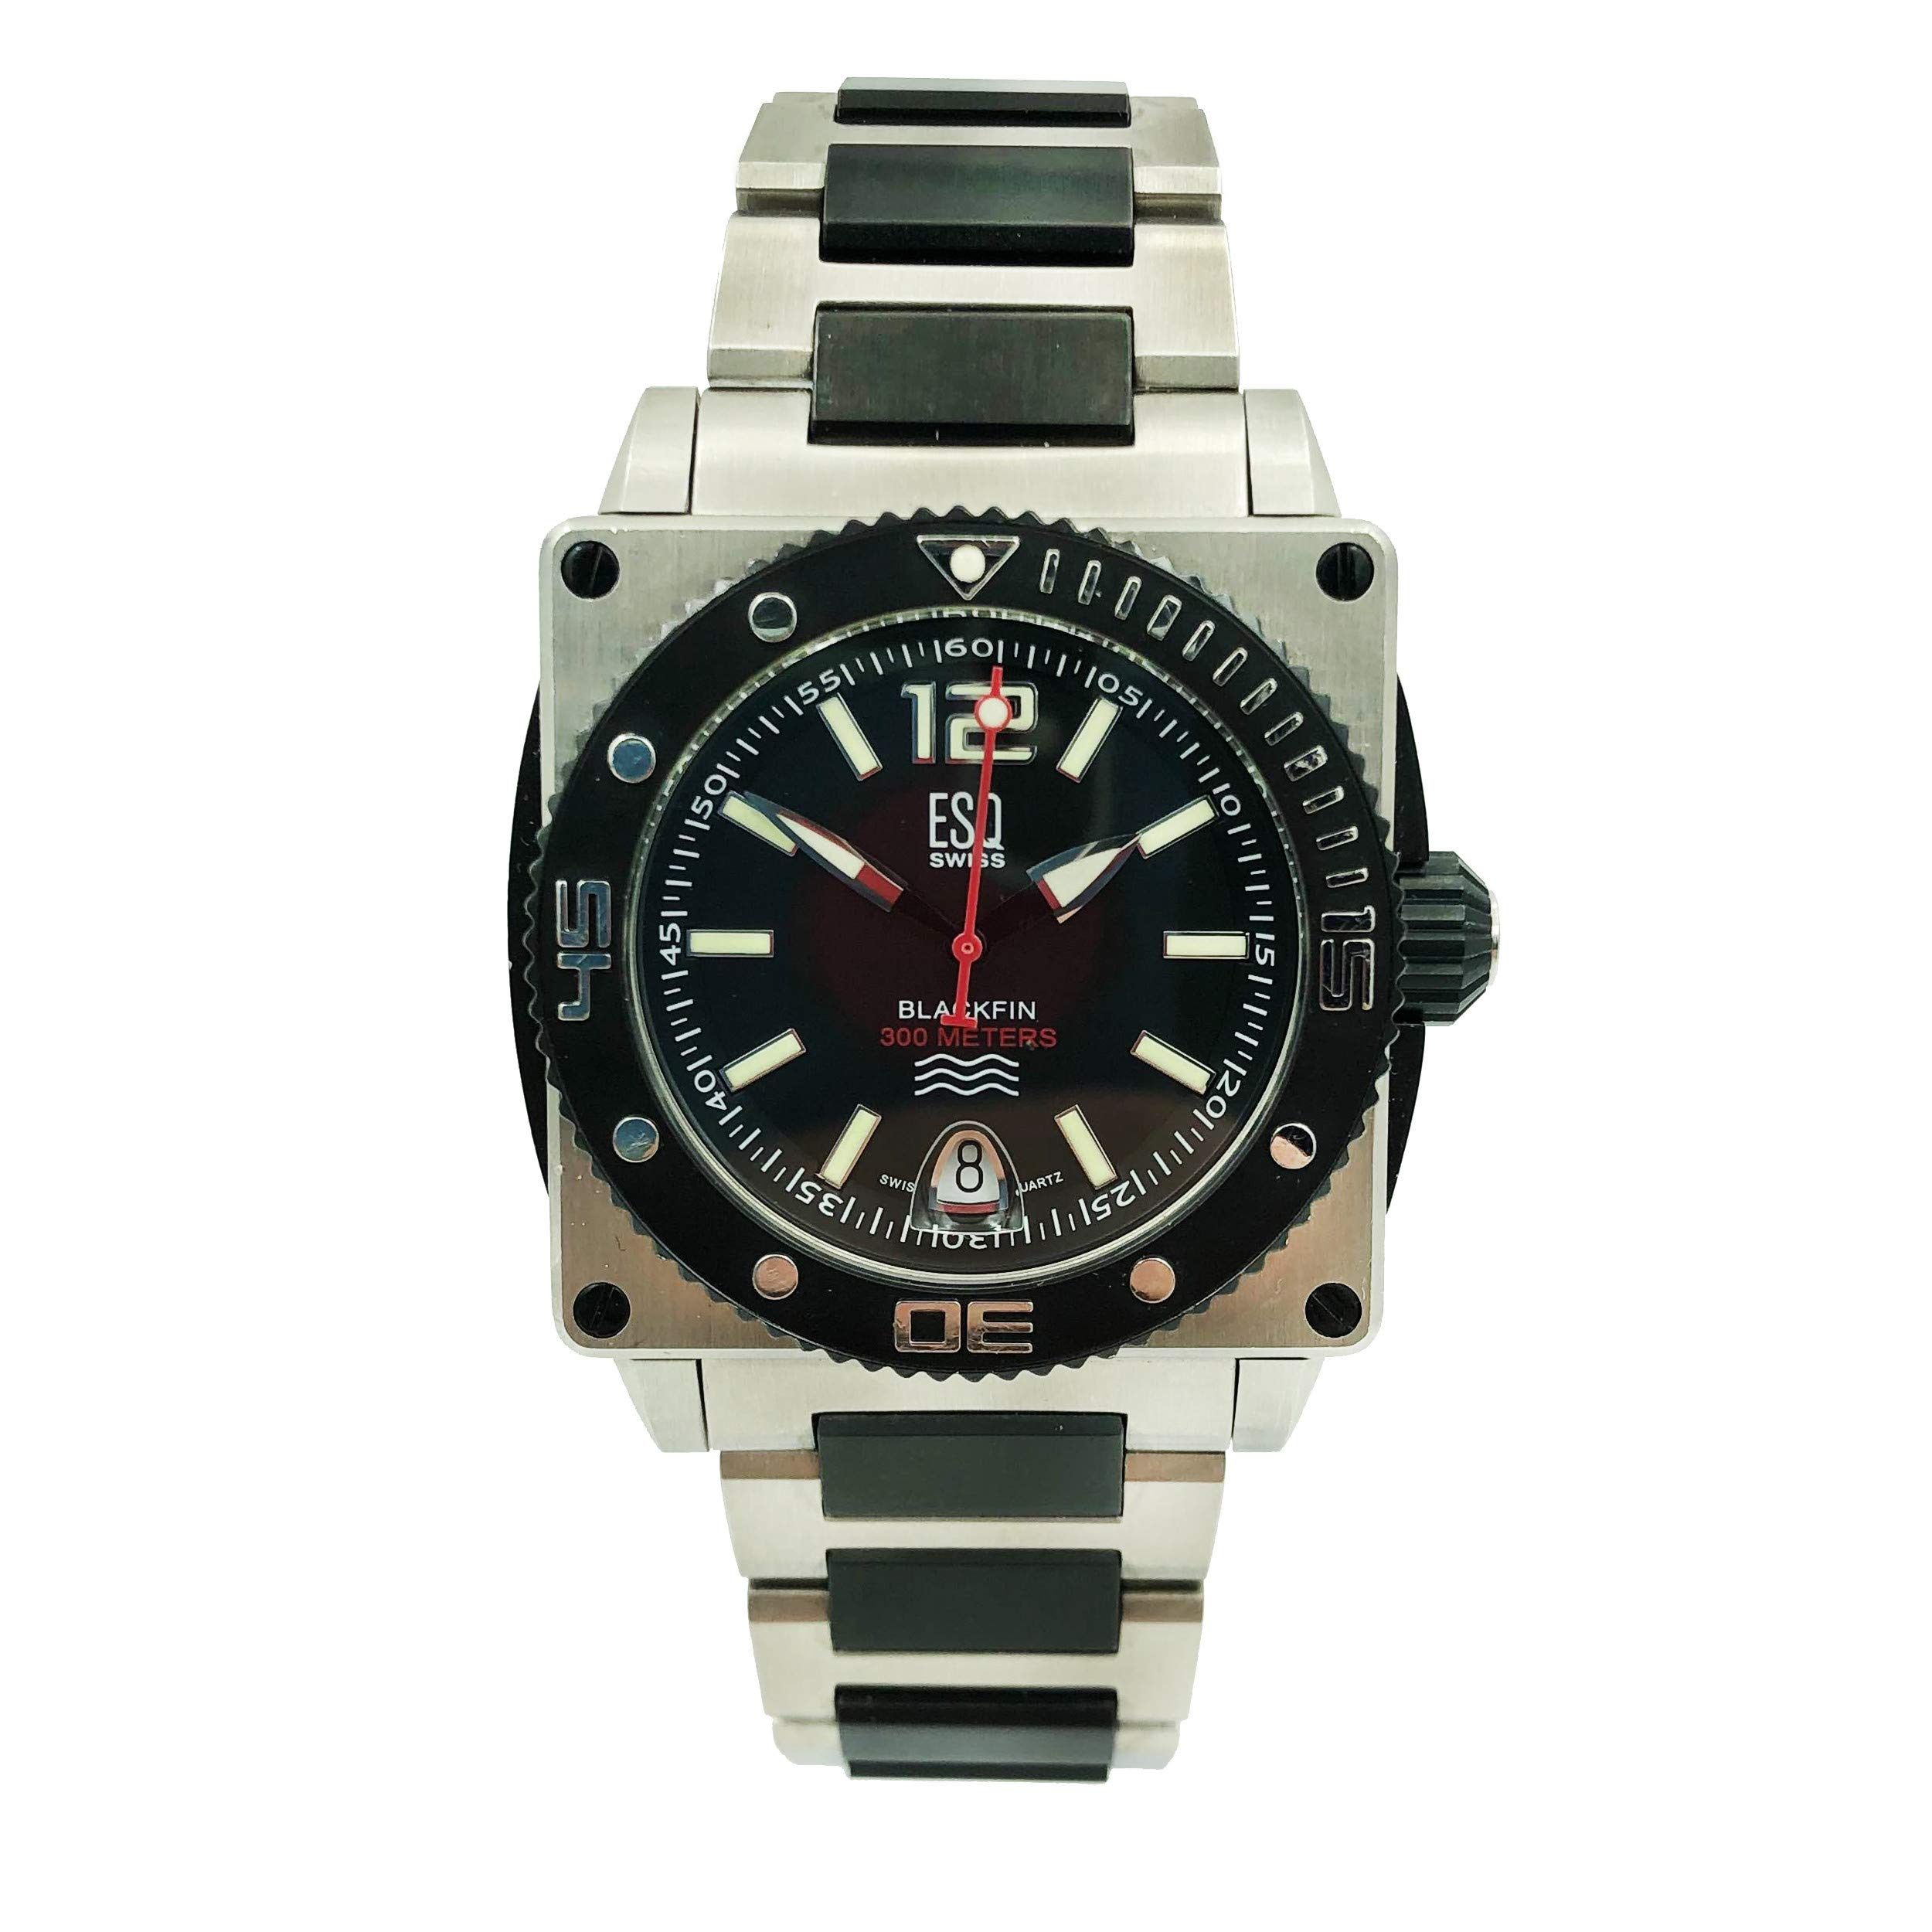 ESQ Blackfin Quartz Male Watch 07301148 (Certified Pre-Owned)